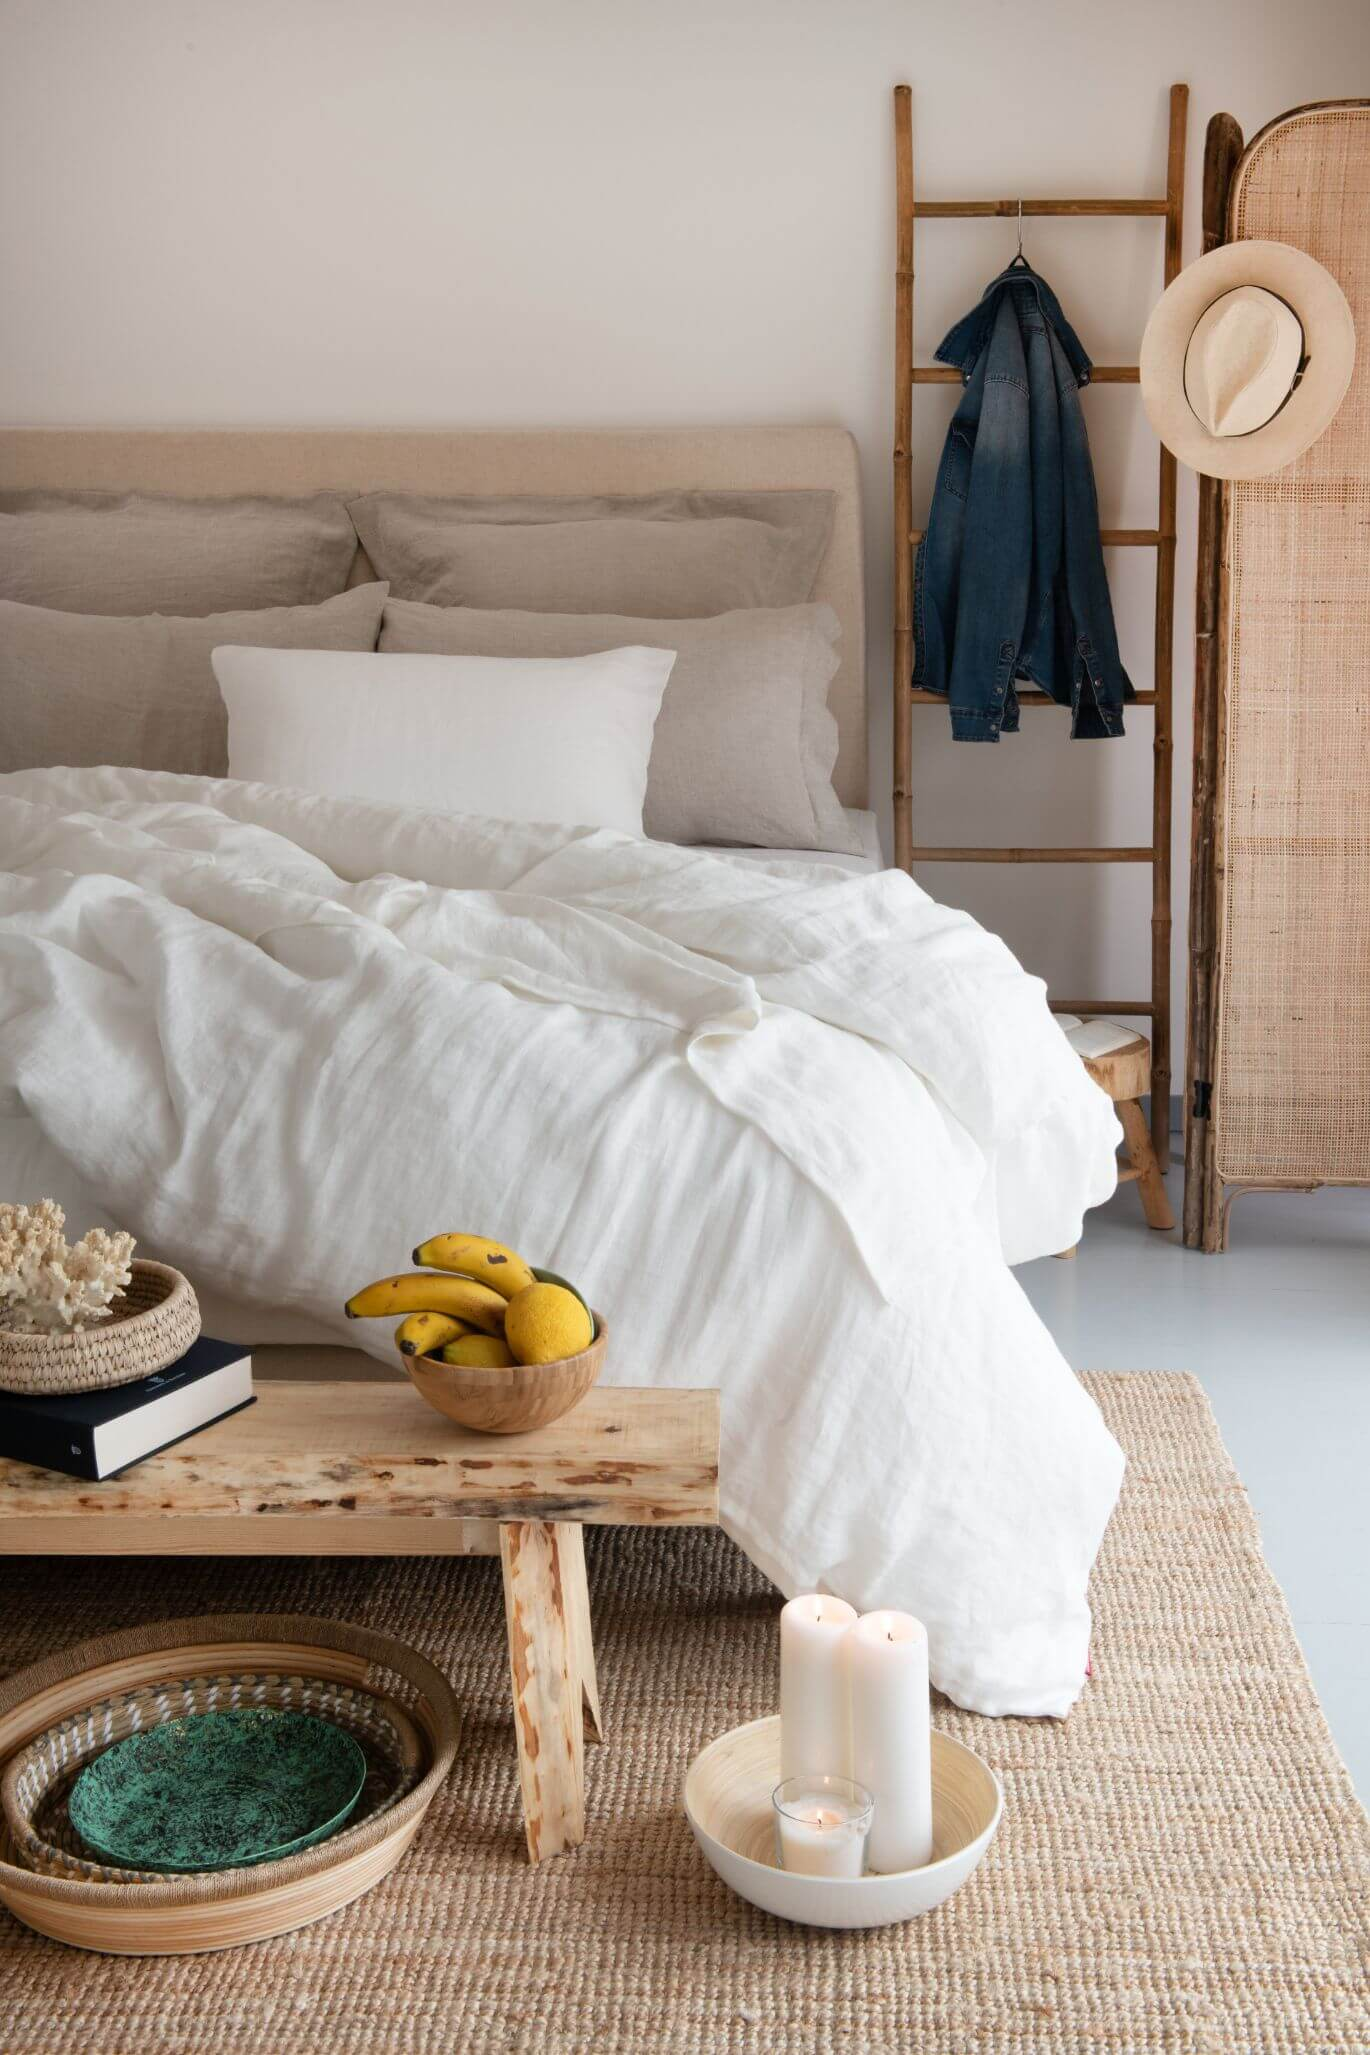 Sustainable bedroom with Marialma's hemp bed sheets